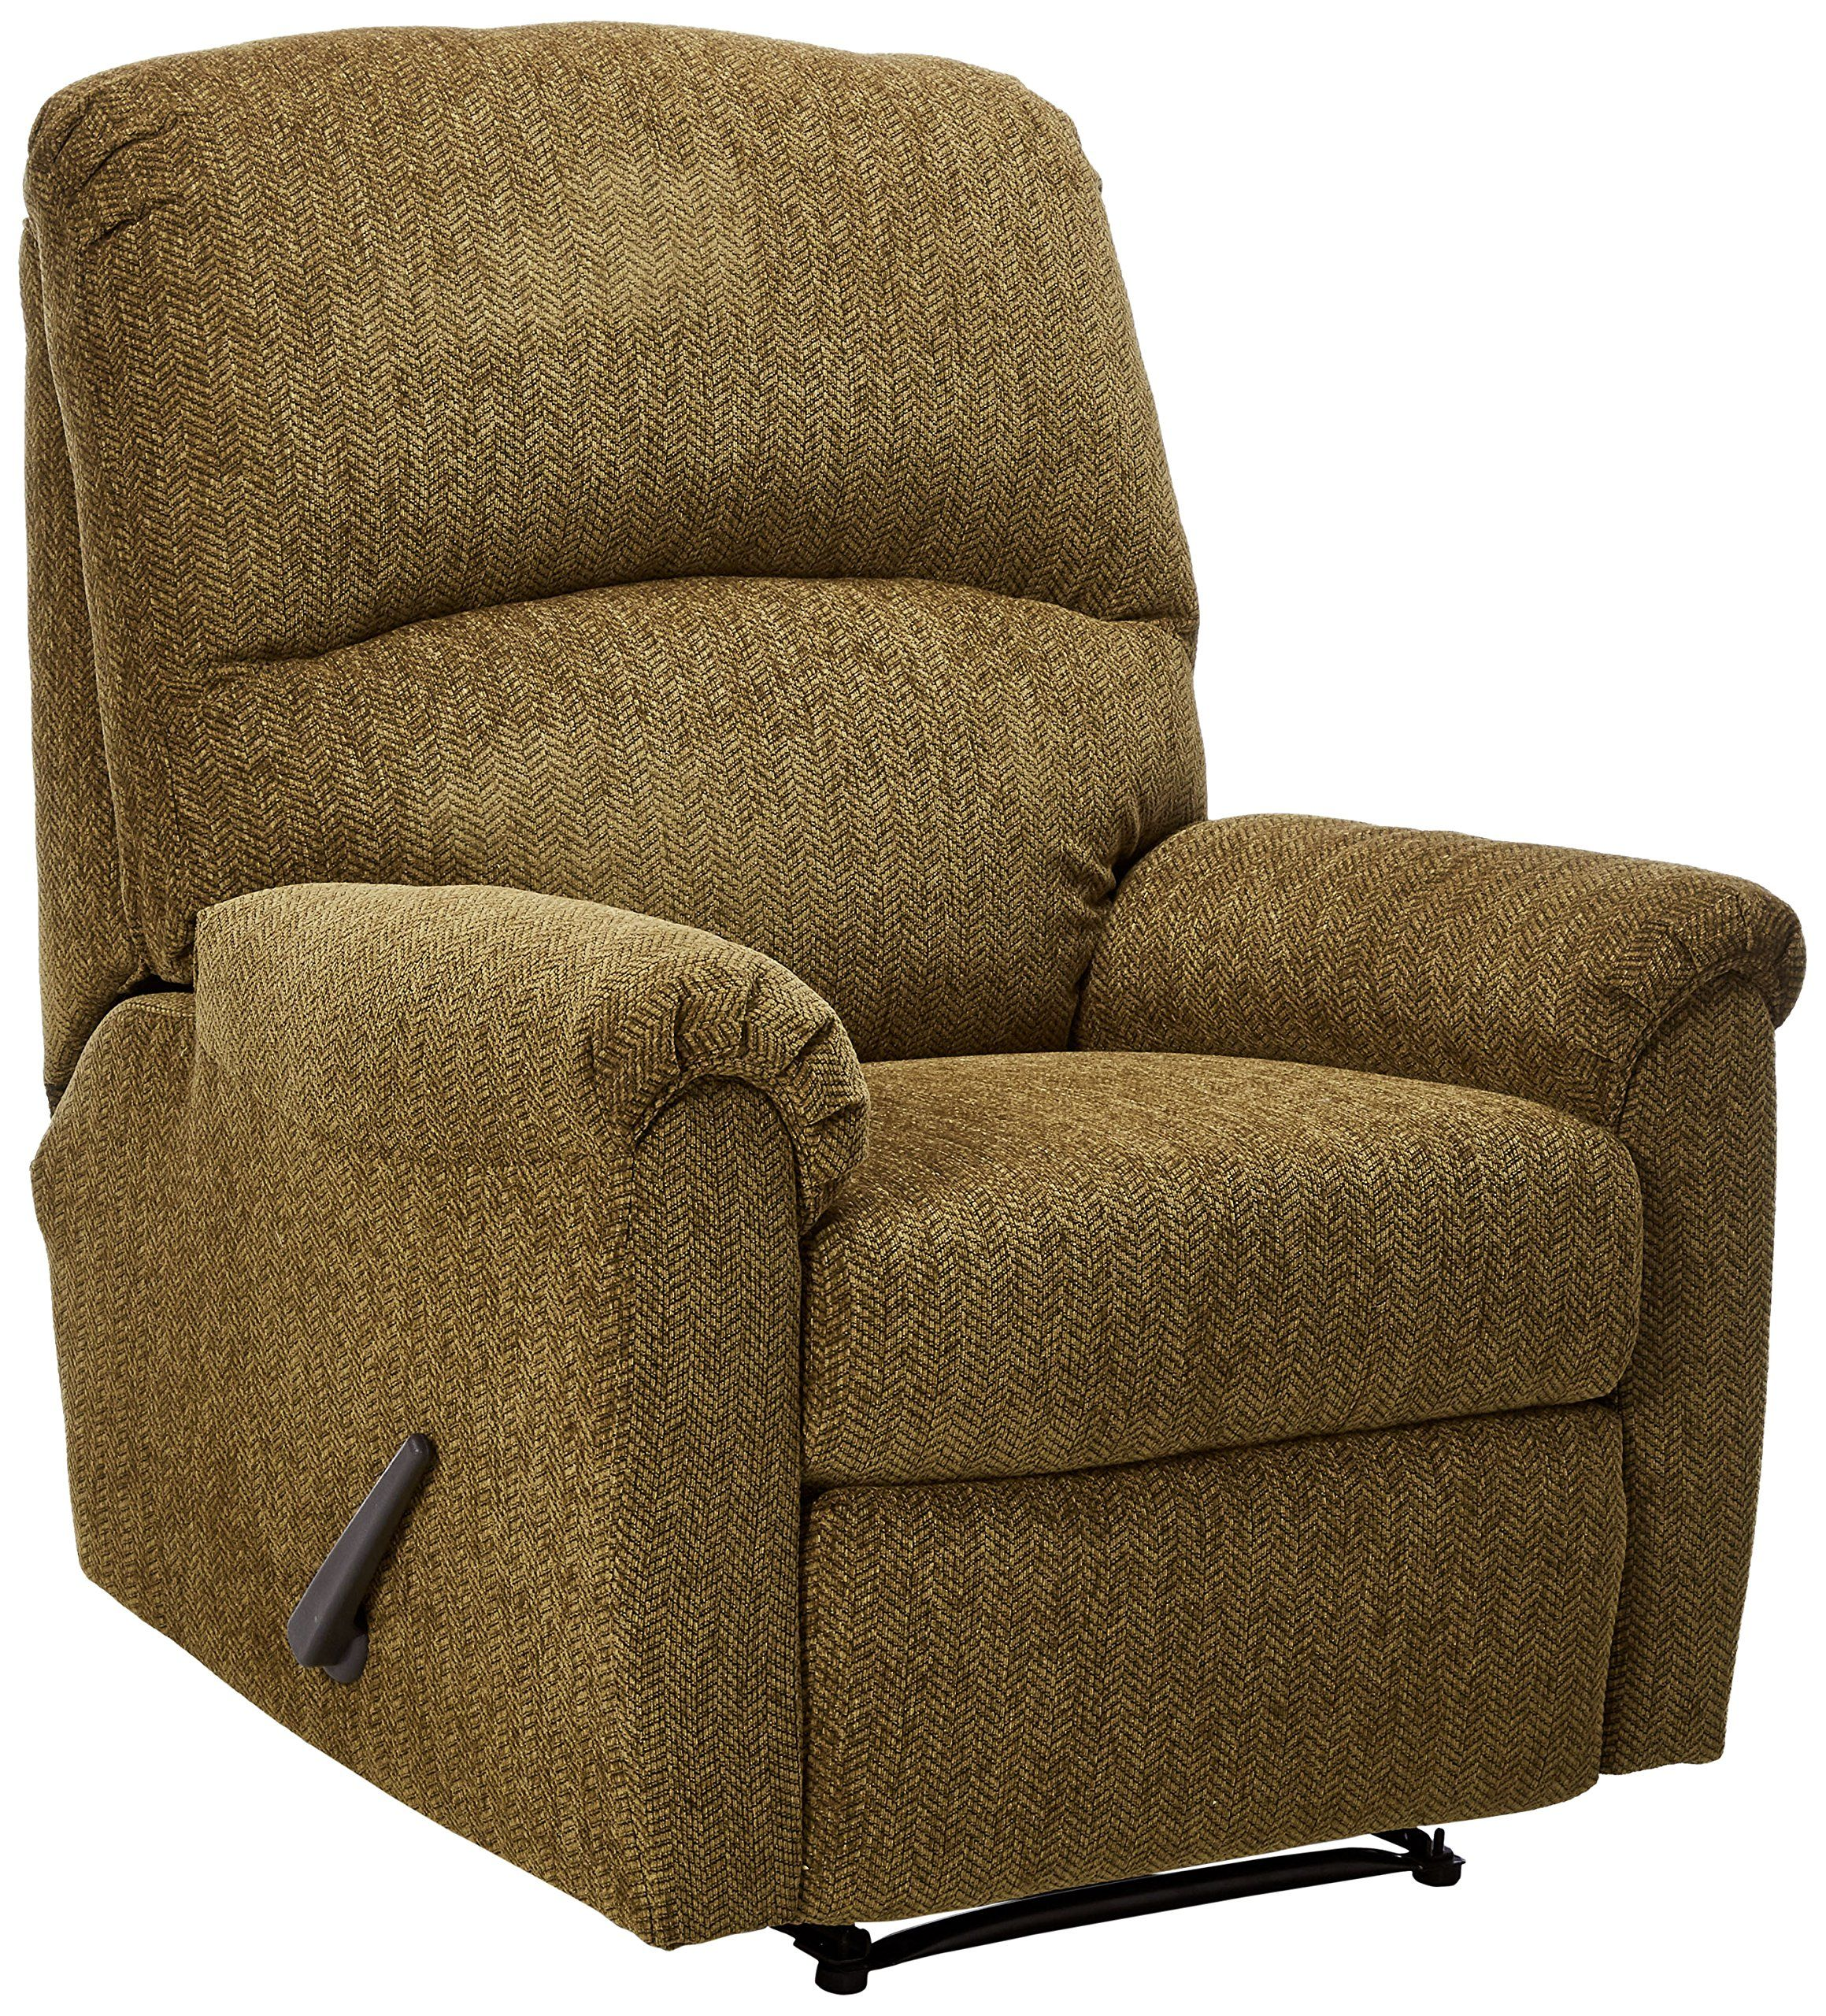 Ashley Furniture Signature Design Pranit Recliner Manual Reclining Chair  Walnut Brown ** Click Image To